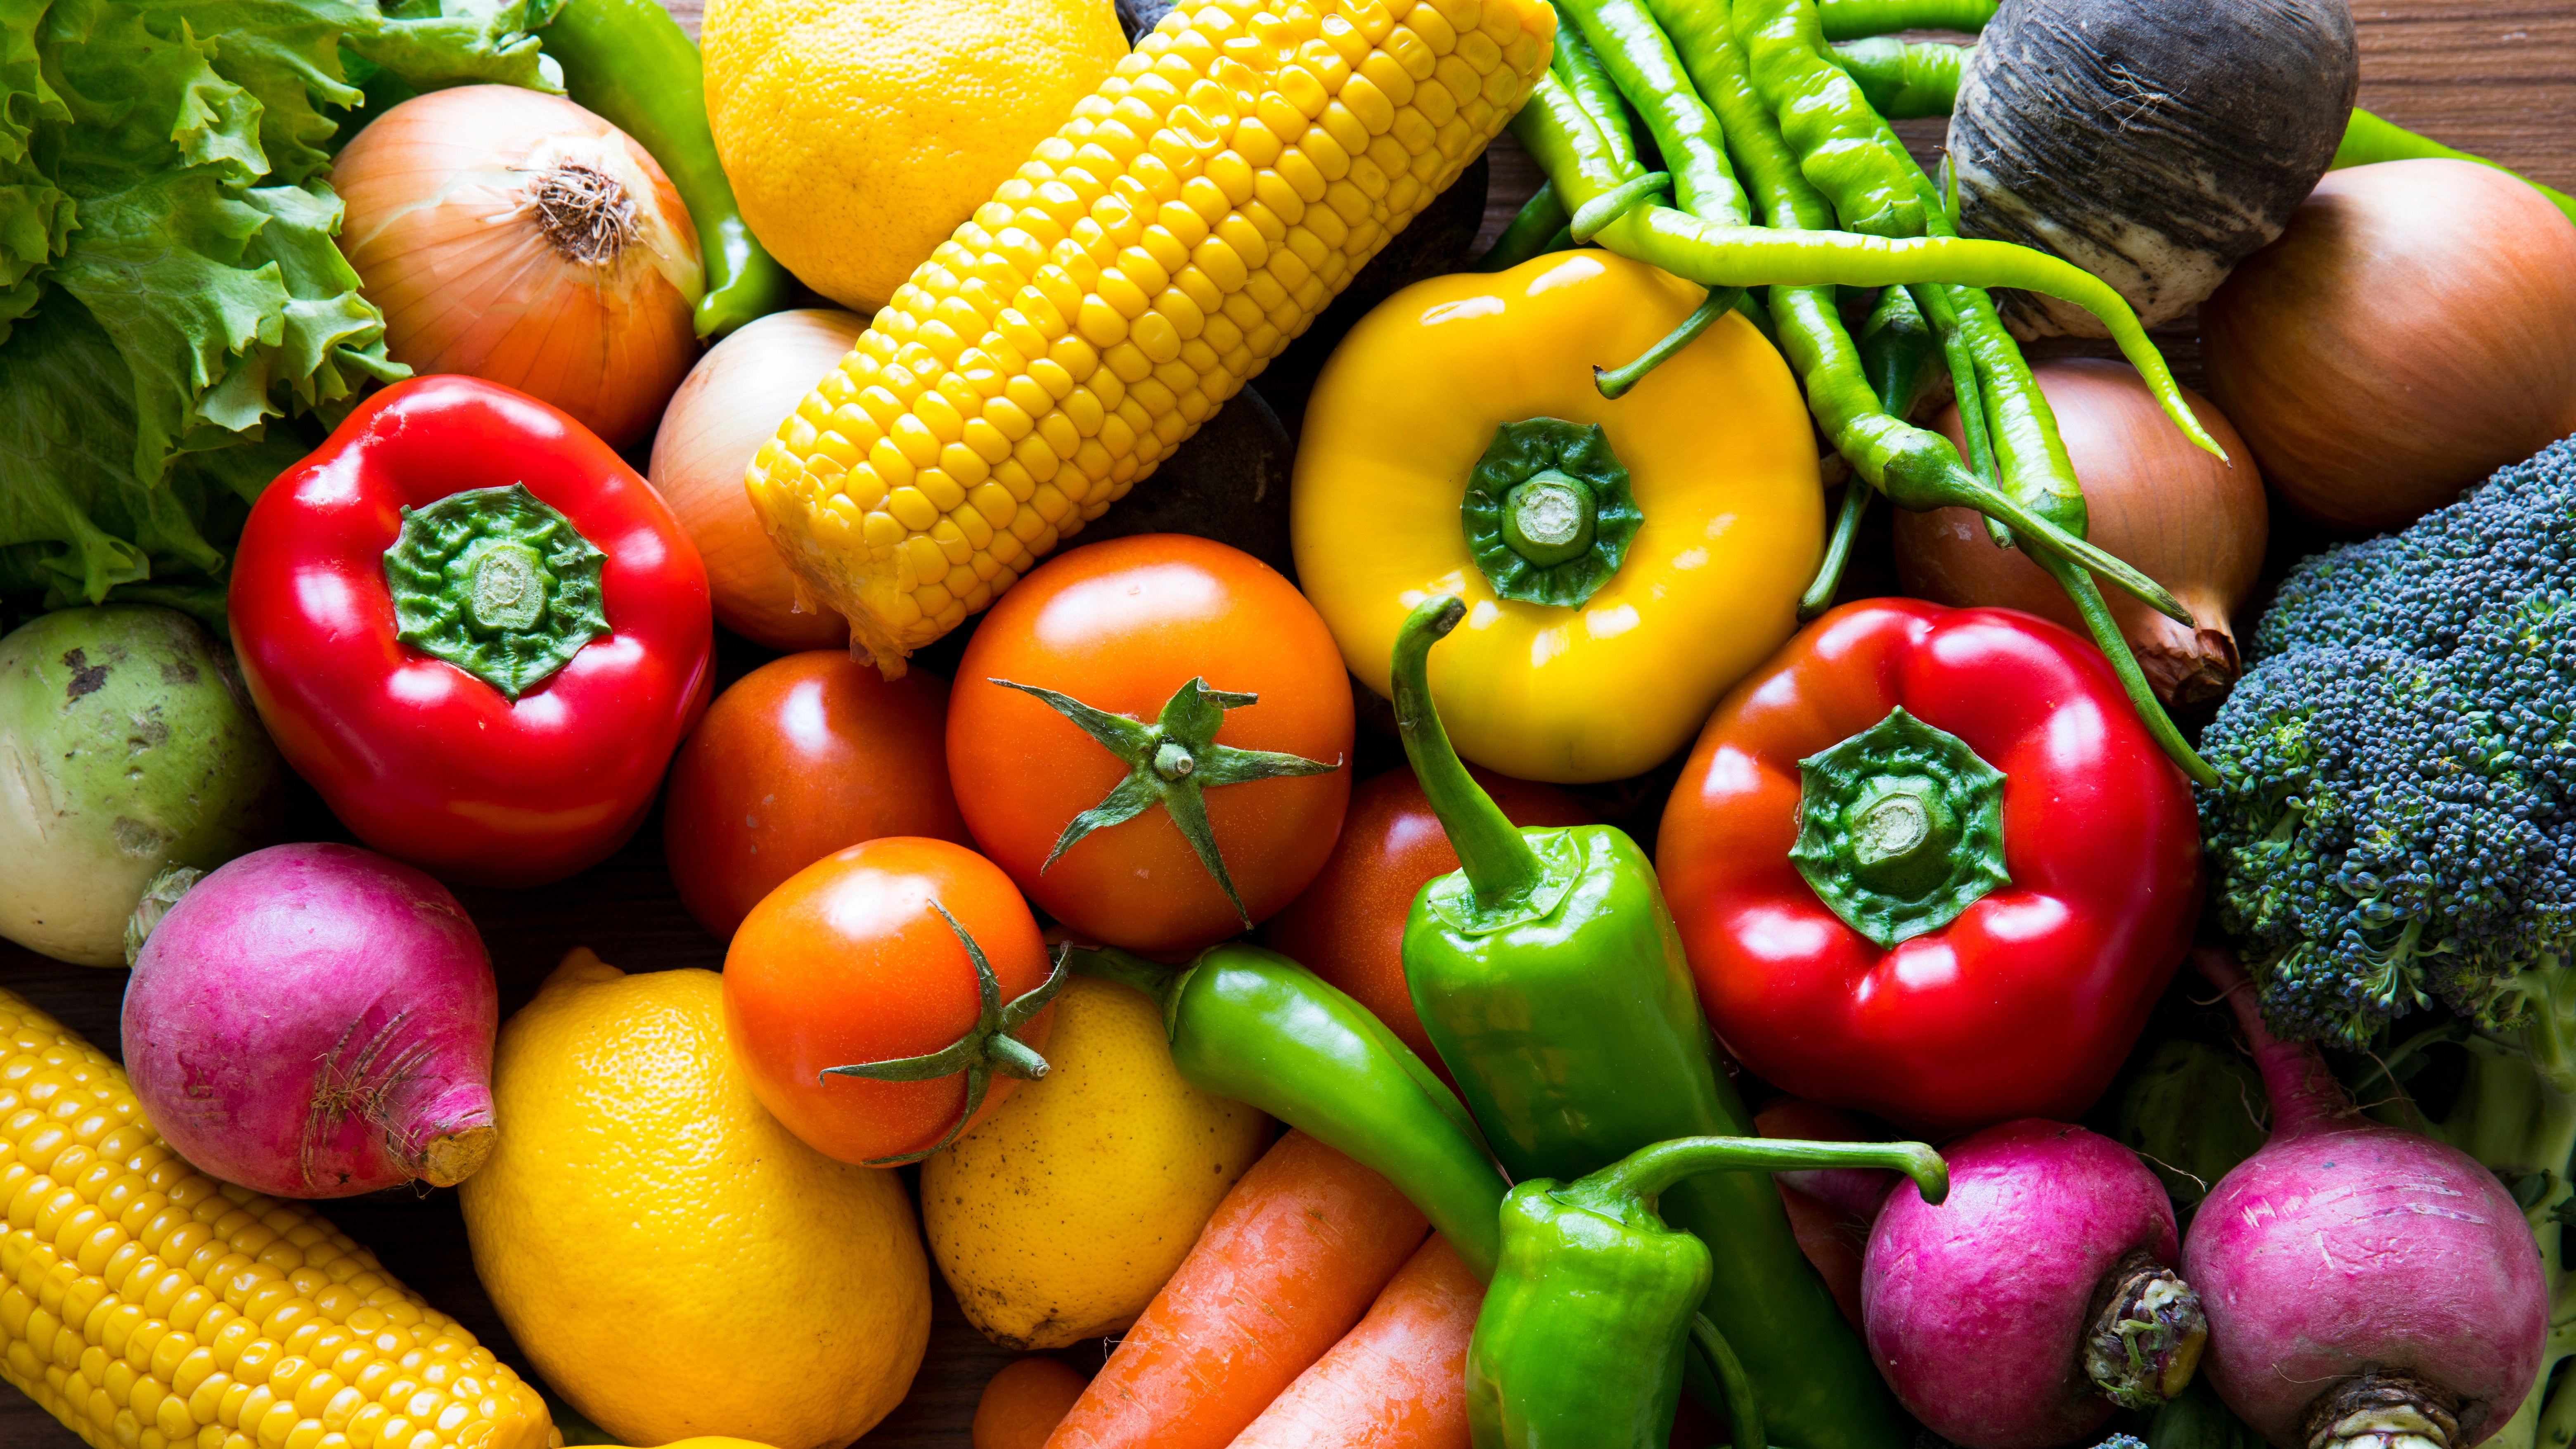 Eating Fruits And Vegetables Is More Important Than Eating 'Organic'